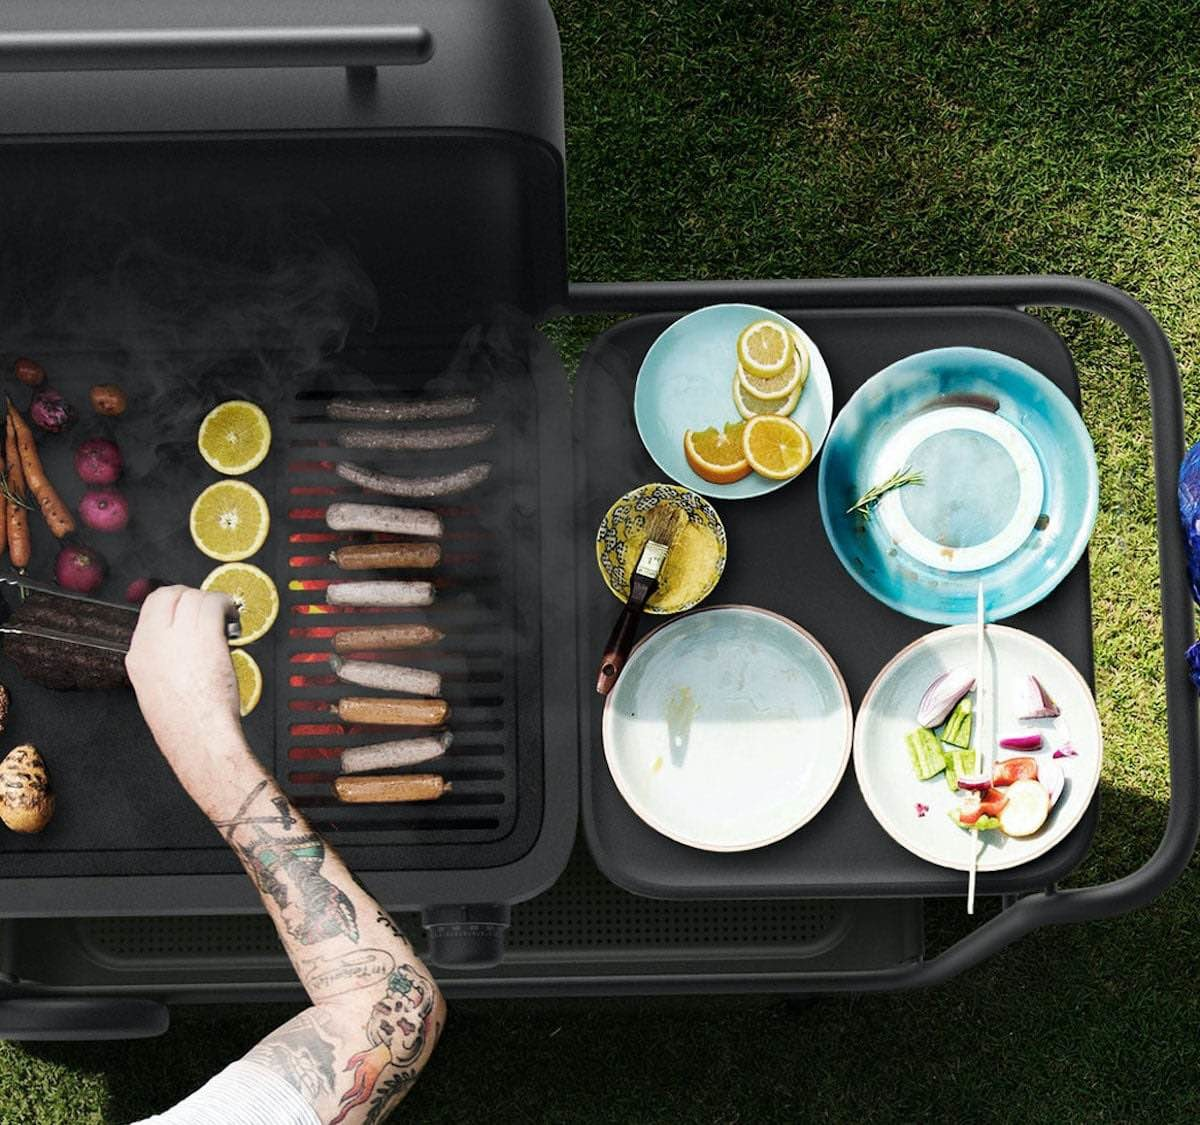 Spark Grills Charcoal BBQ uses a custom system that gets hotter faster